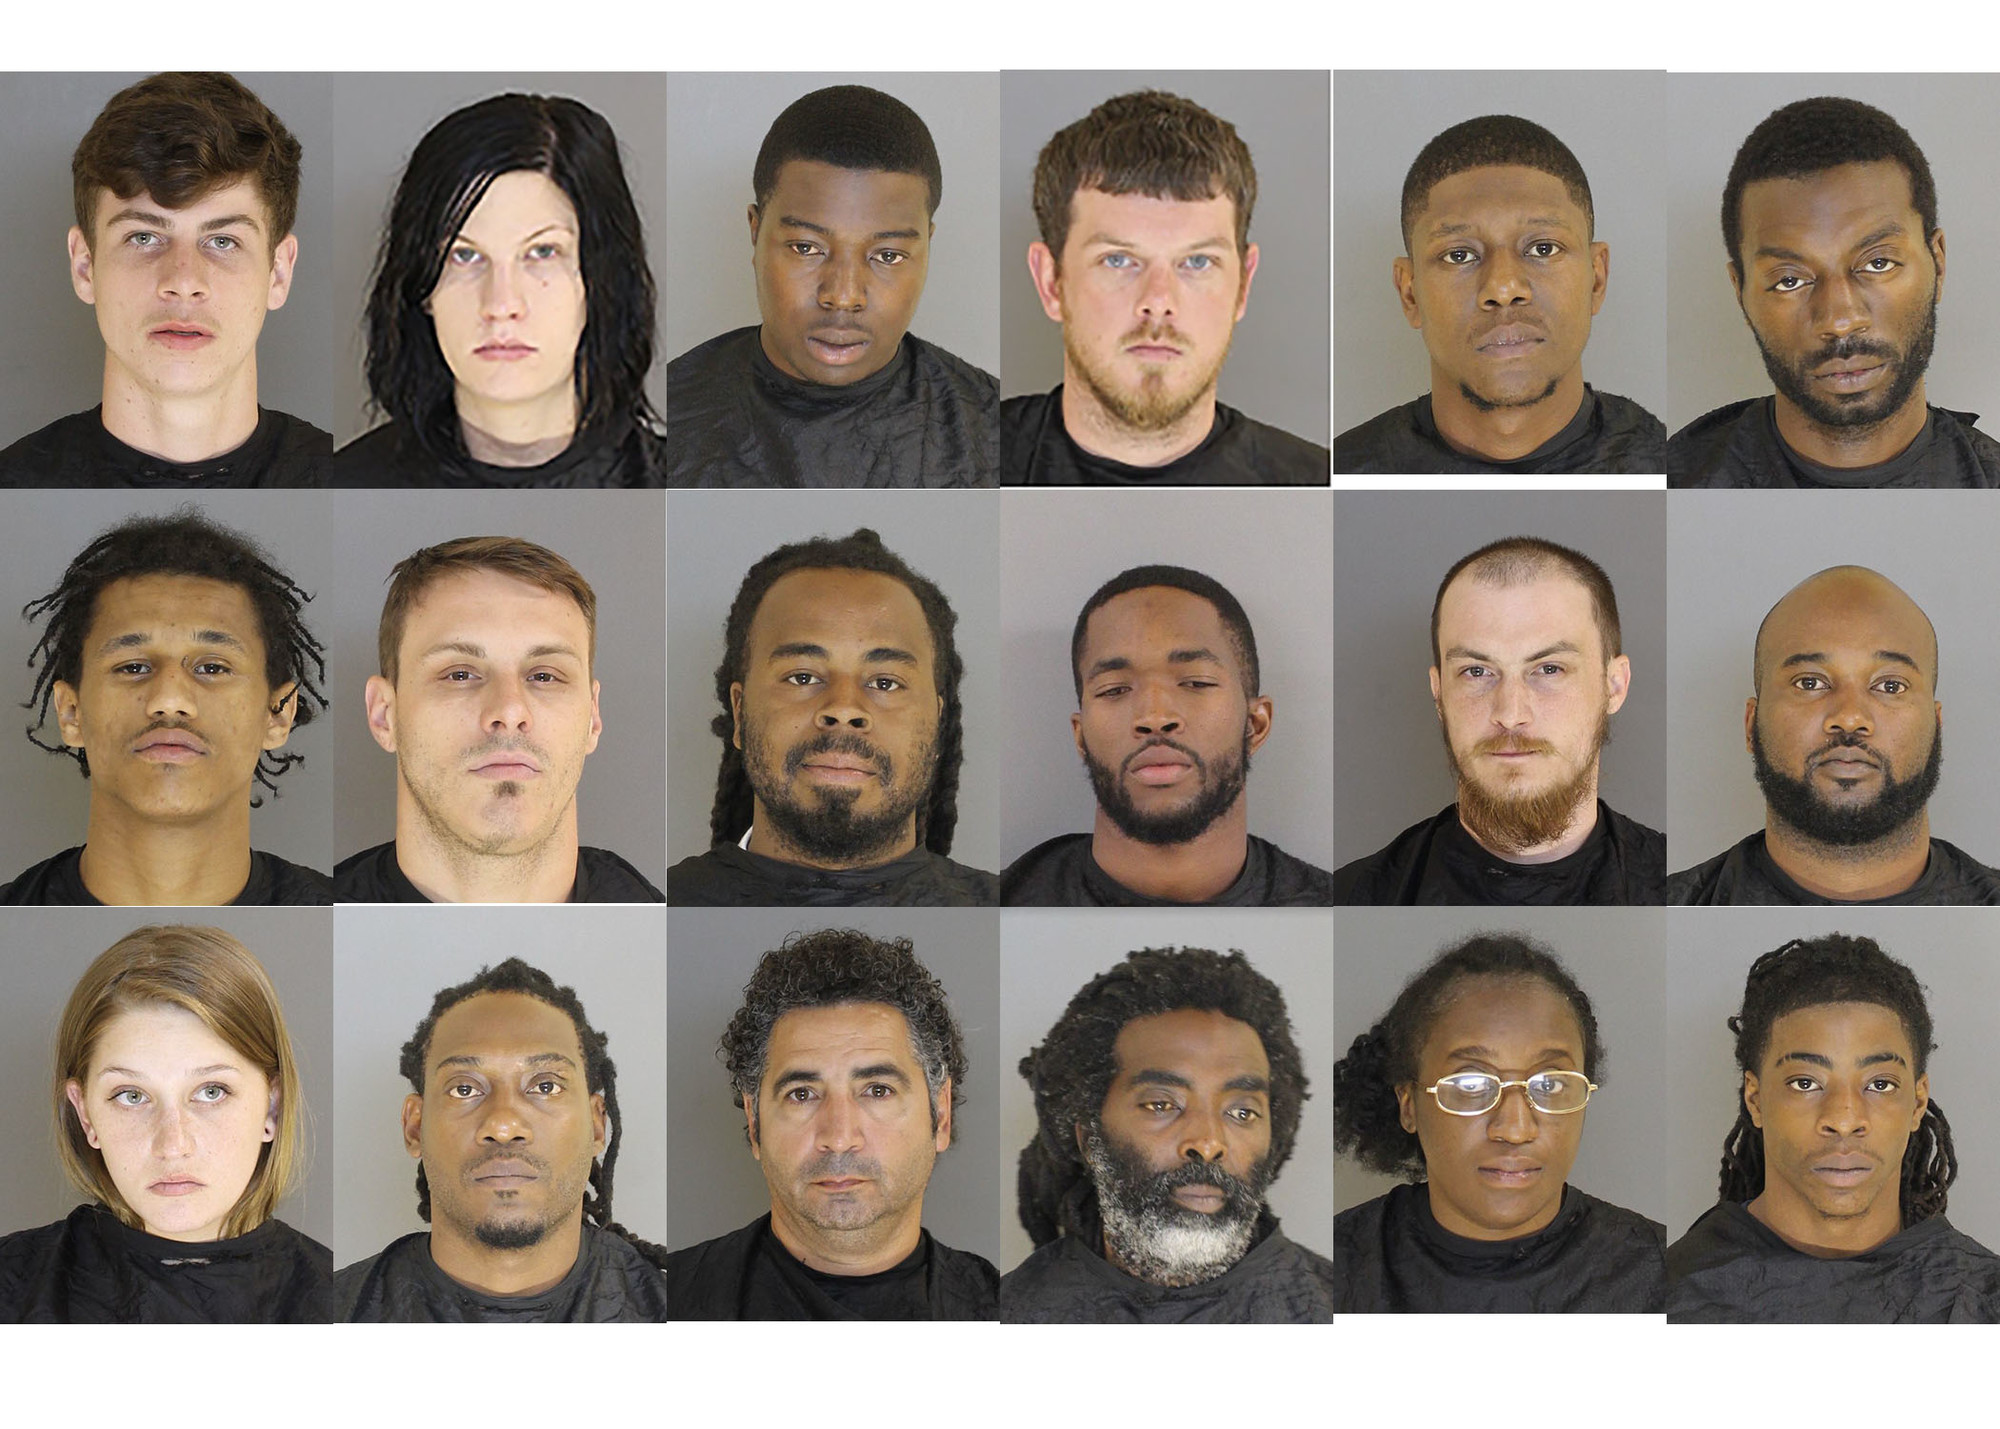 Top row, left to right: Clayton Michael Allen, Mariska Morgan Baker, Sheldon Levern Banjamin , Corey Lake Butler, Stanley Irvin Clark Jr. and Gino Walter Curry.